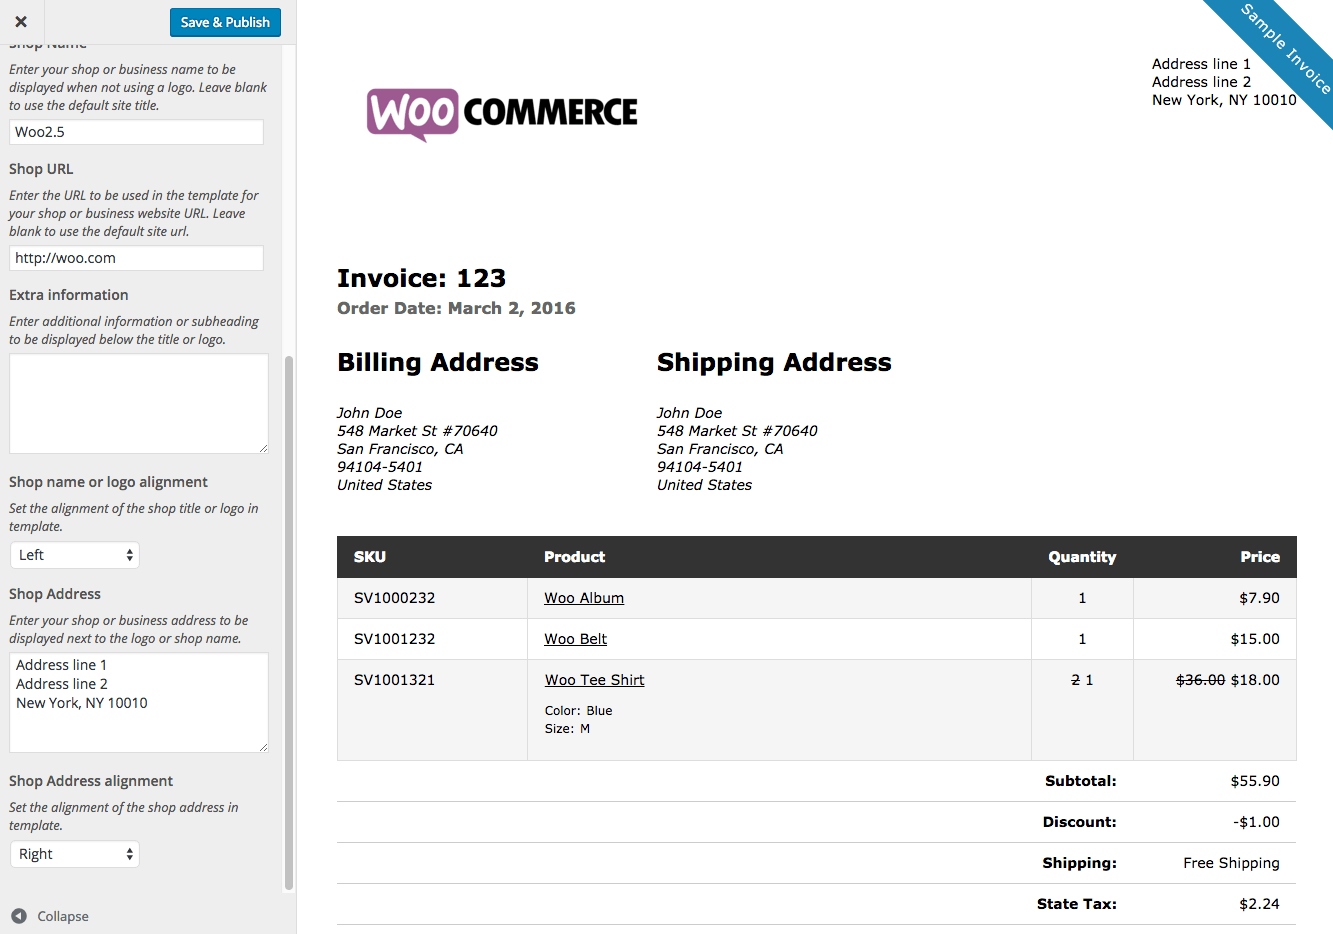 Thassosus  Gorgeous Print Invoices Amp Packing Lists  Woocommerce With Exciting Woocommerce Print Invoices  Packing Lists Customizer With Delightful Order To Invoice Also Invoice Letterhead In Addition Used Car Invoice Template And Canada Invoice Template As Well As Invoice Template Free Online Additionally Invoice Example Doc From Woocommercecom With Thassosus  Exciting Print Invoices Amp Packing Lists  Woocommerce With Delightful Woocommerce Print Invoices  Packing Lists Customizer And Gorgeous Order To Invoice Also Invoice Letterhead In Addition Used Car Invoice Template From Woocommercecom